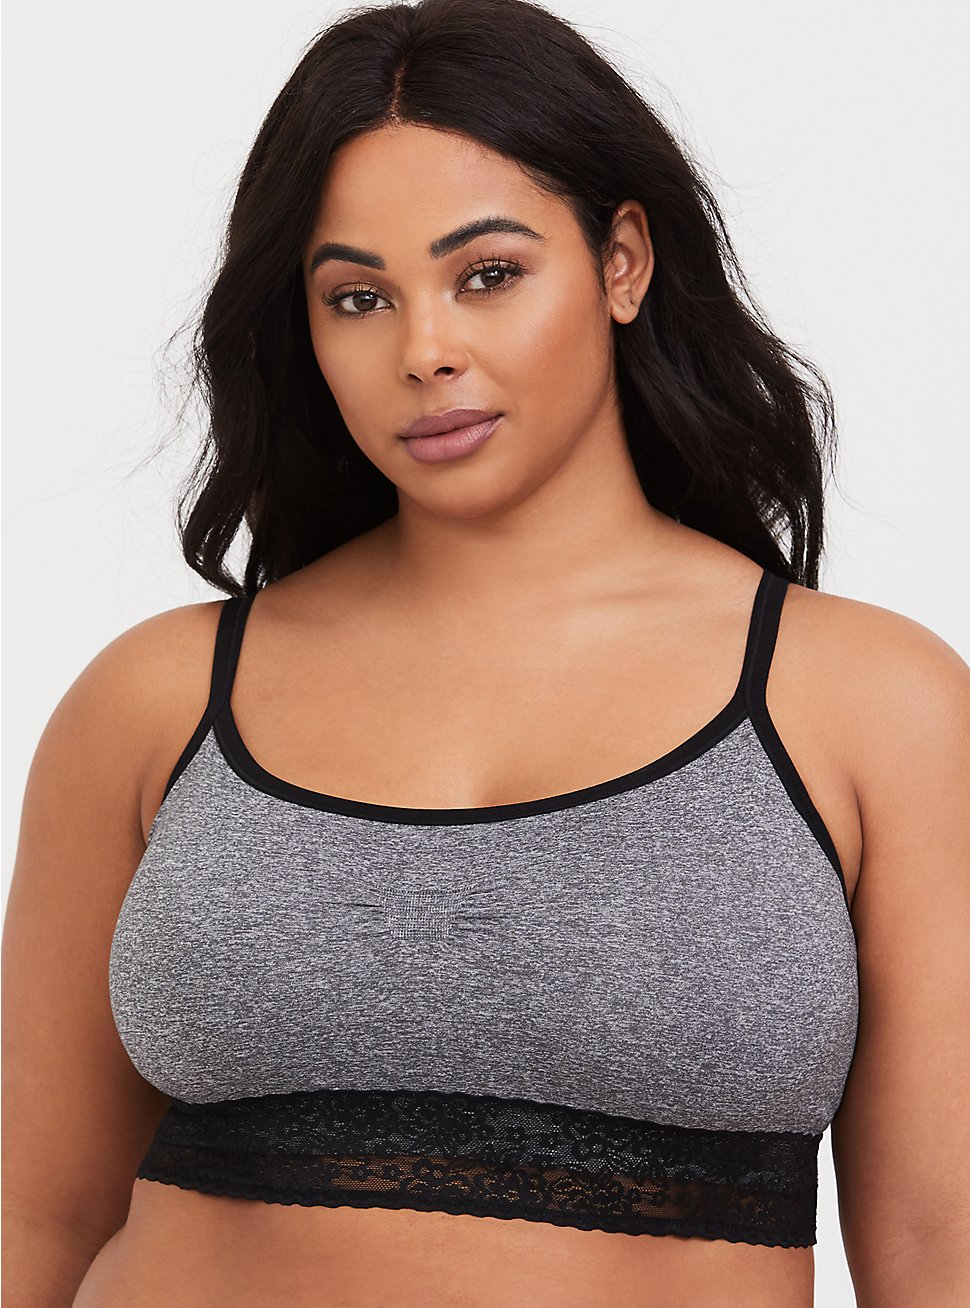 Plus Size Heather Grey Seamless Lightly Padded Bralette, HEATHER GREY, hi-res